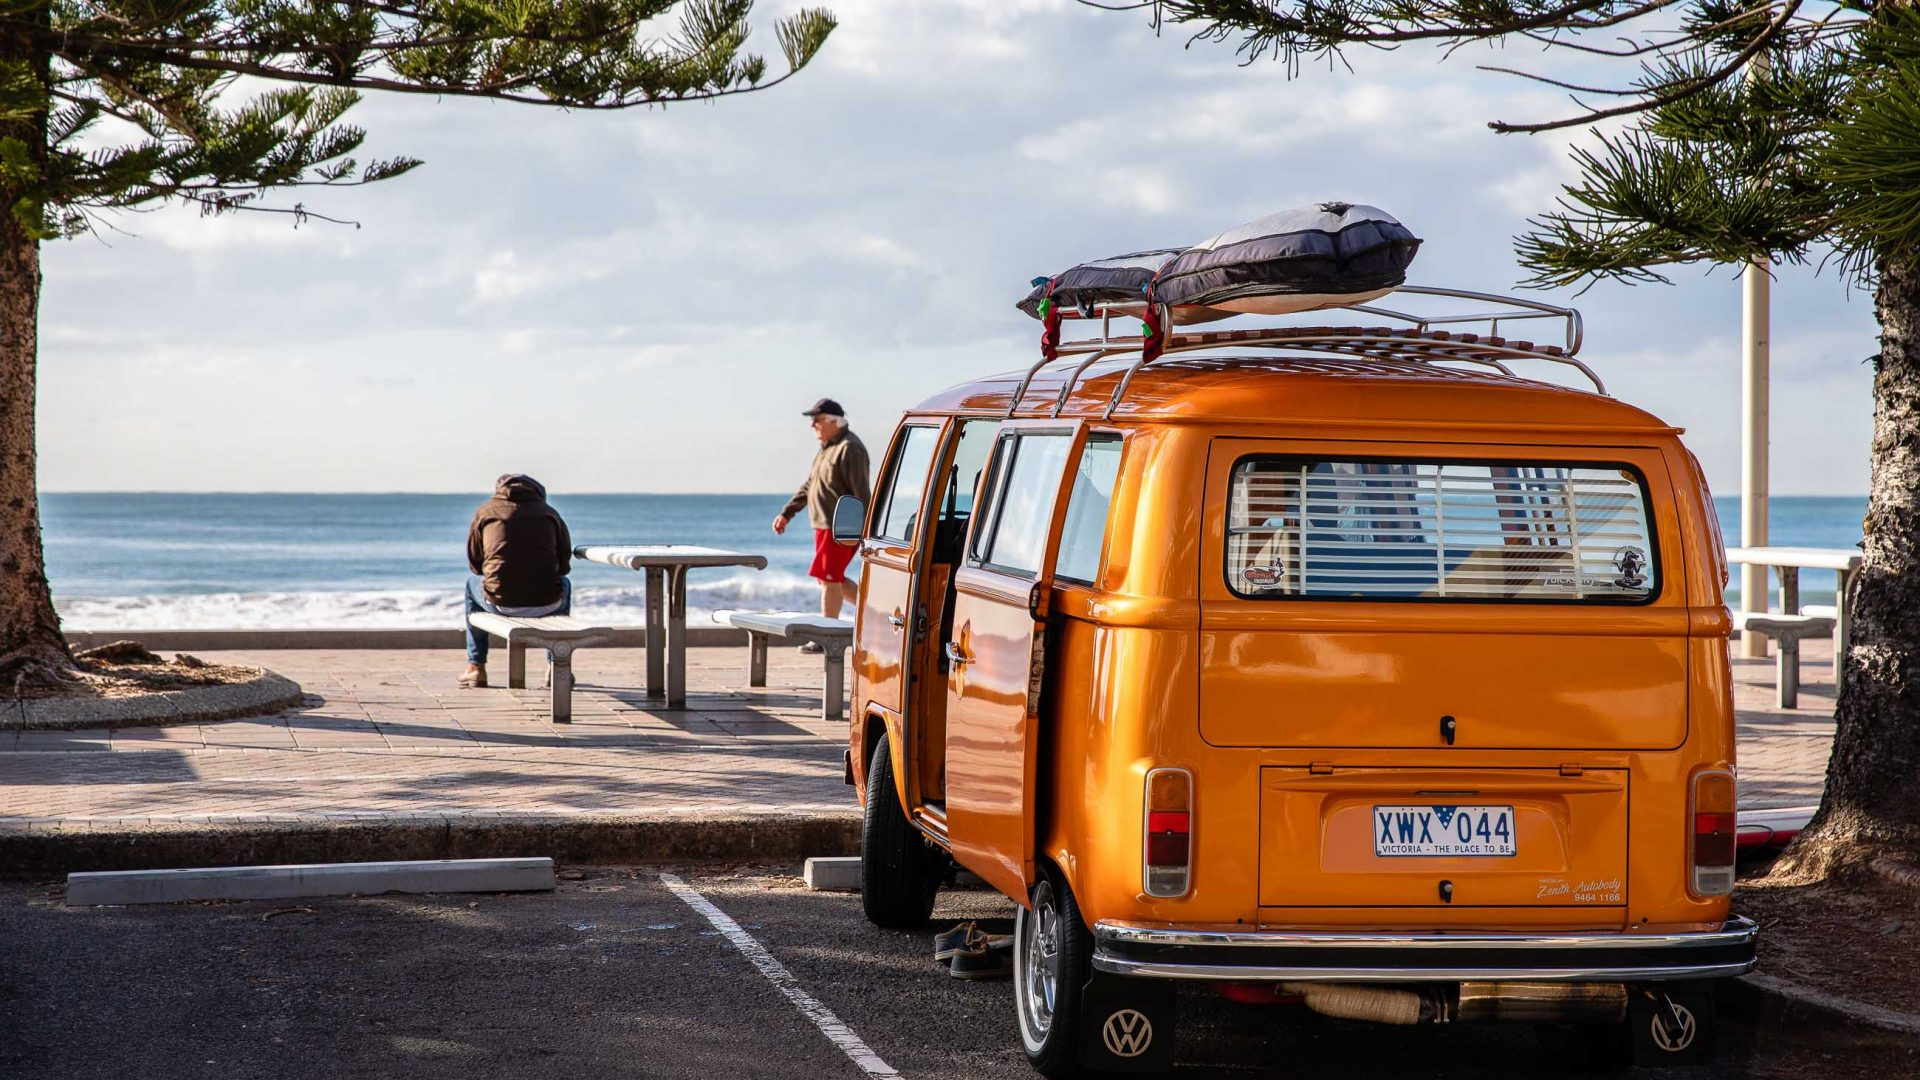 A yellow combi van is parked at the beach.